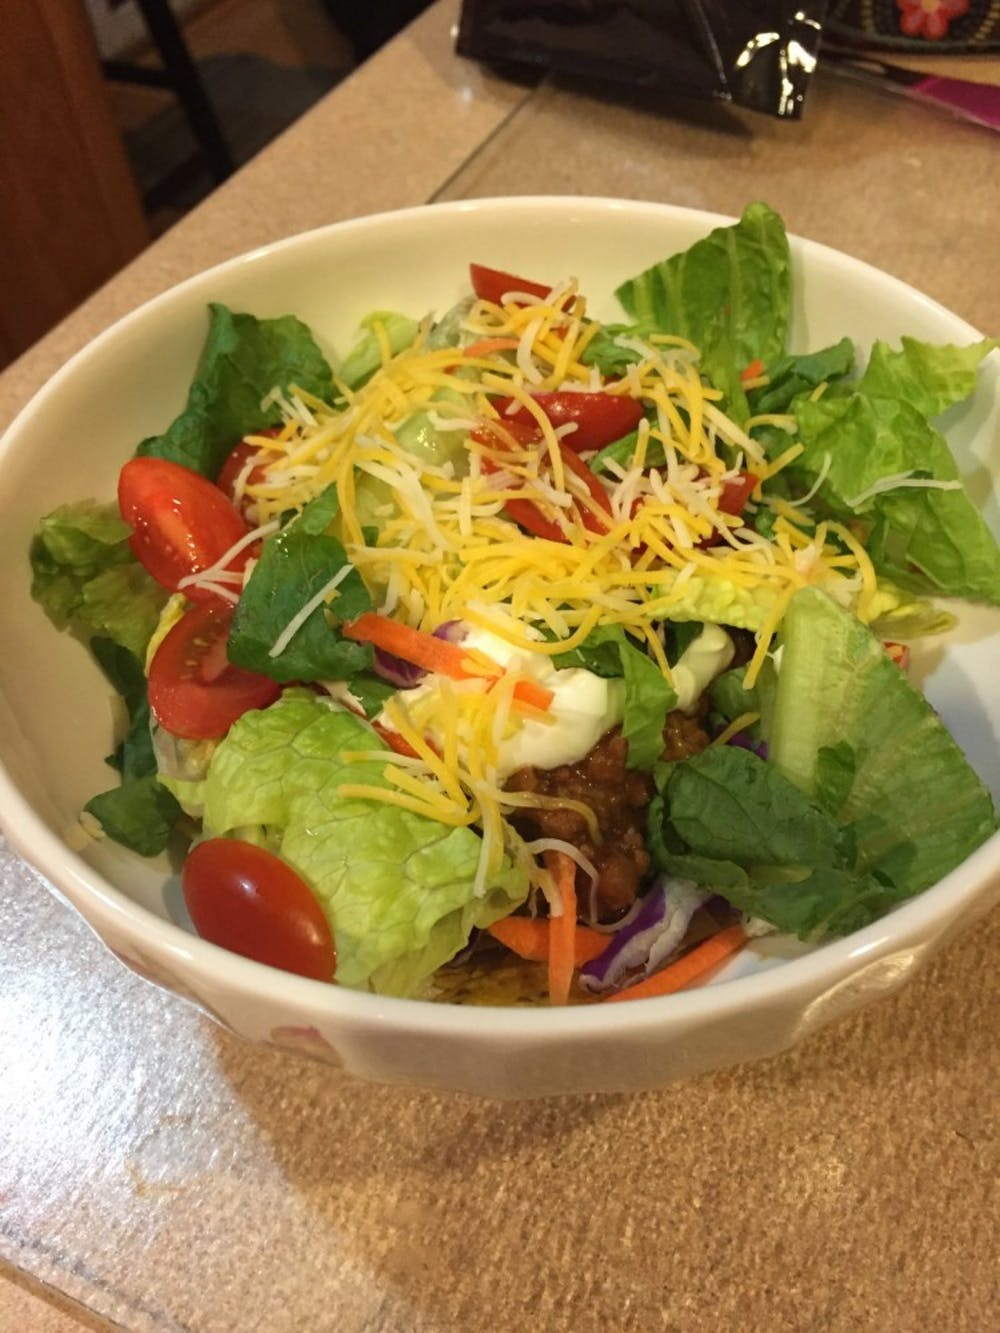 Recipe of the week: Taco salad